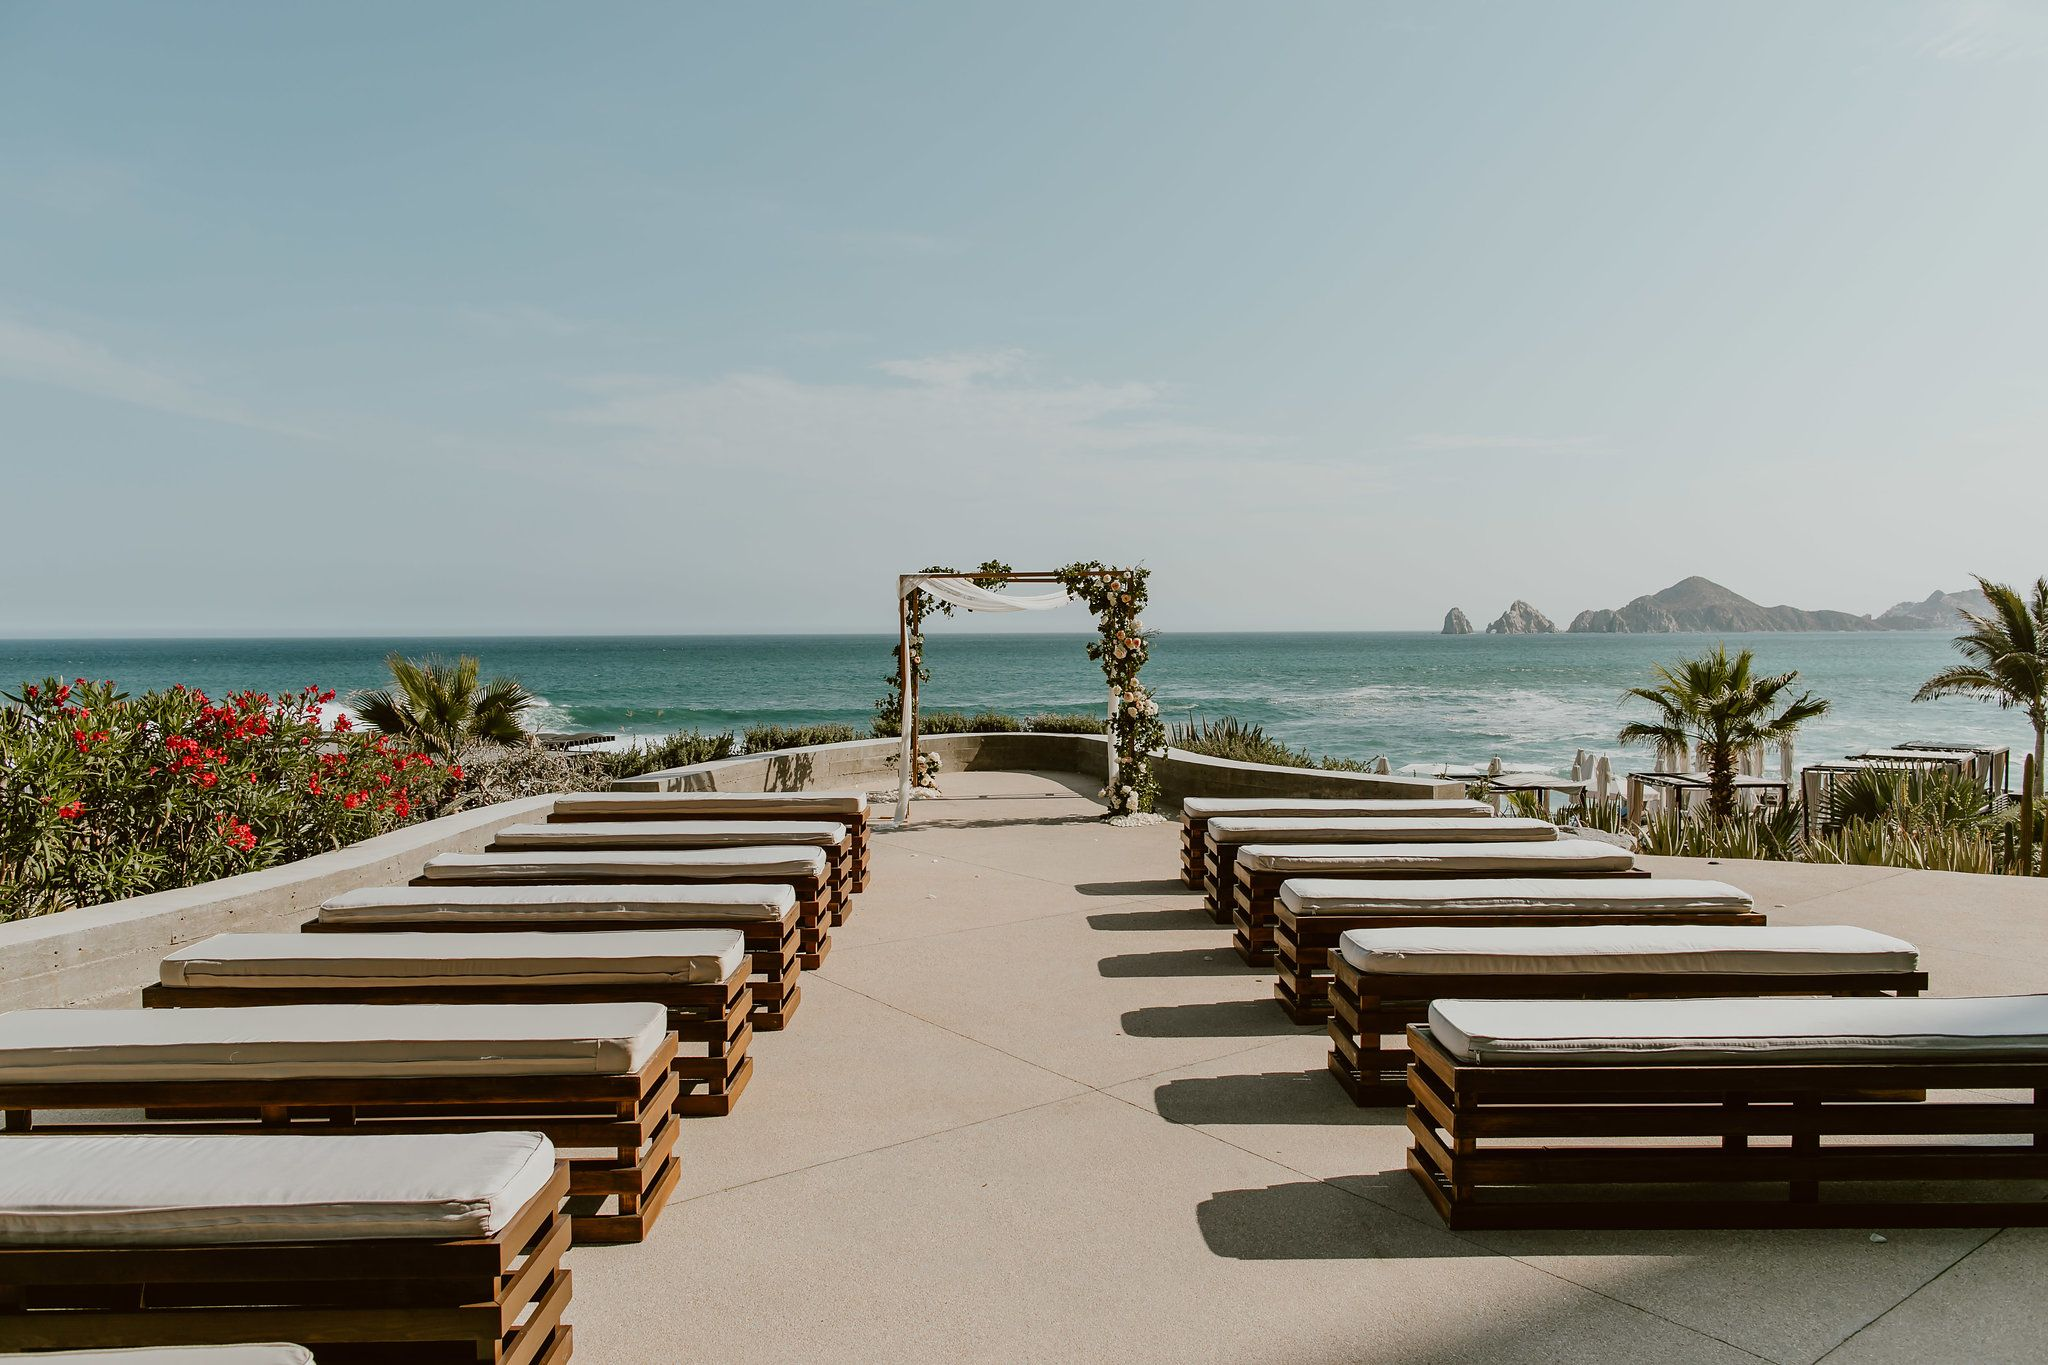 This was the Wedding Ceremony setup and design overlooking the Sea of Cortez. The famous landmark of the Arch is in the background. This was taken by Ana and Jerome at The Cape, by Thompson Hotels in Cabo San Lucas Mexico. Wedding Planning by Cabo Wedding Services